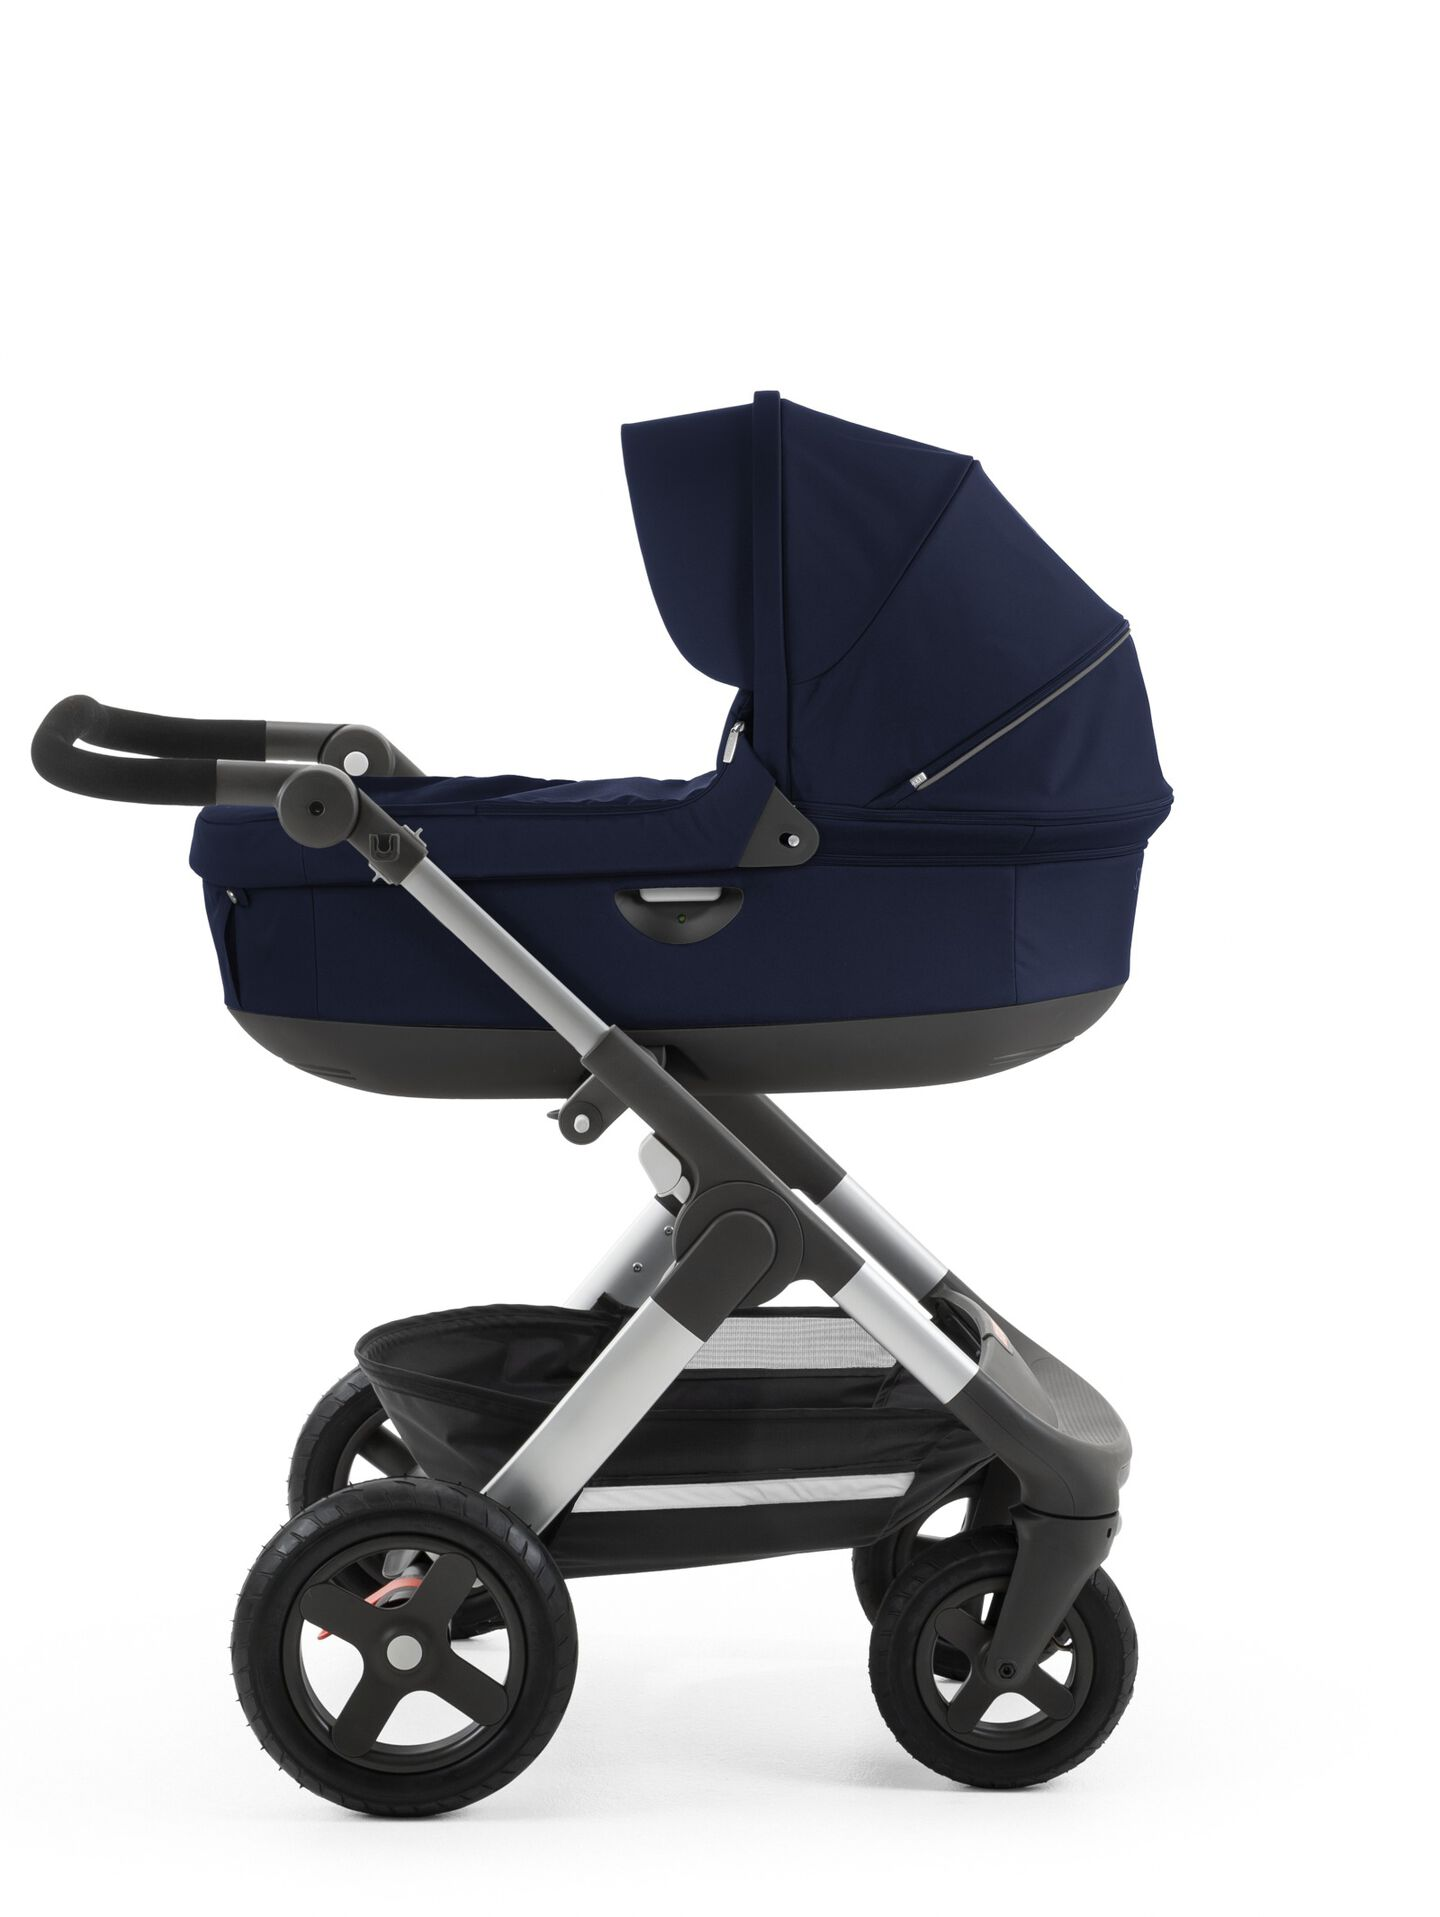 Stokke® Trailz™ with Stokke® Stroller Carry Cot Deep Blue.